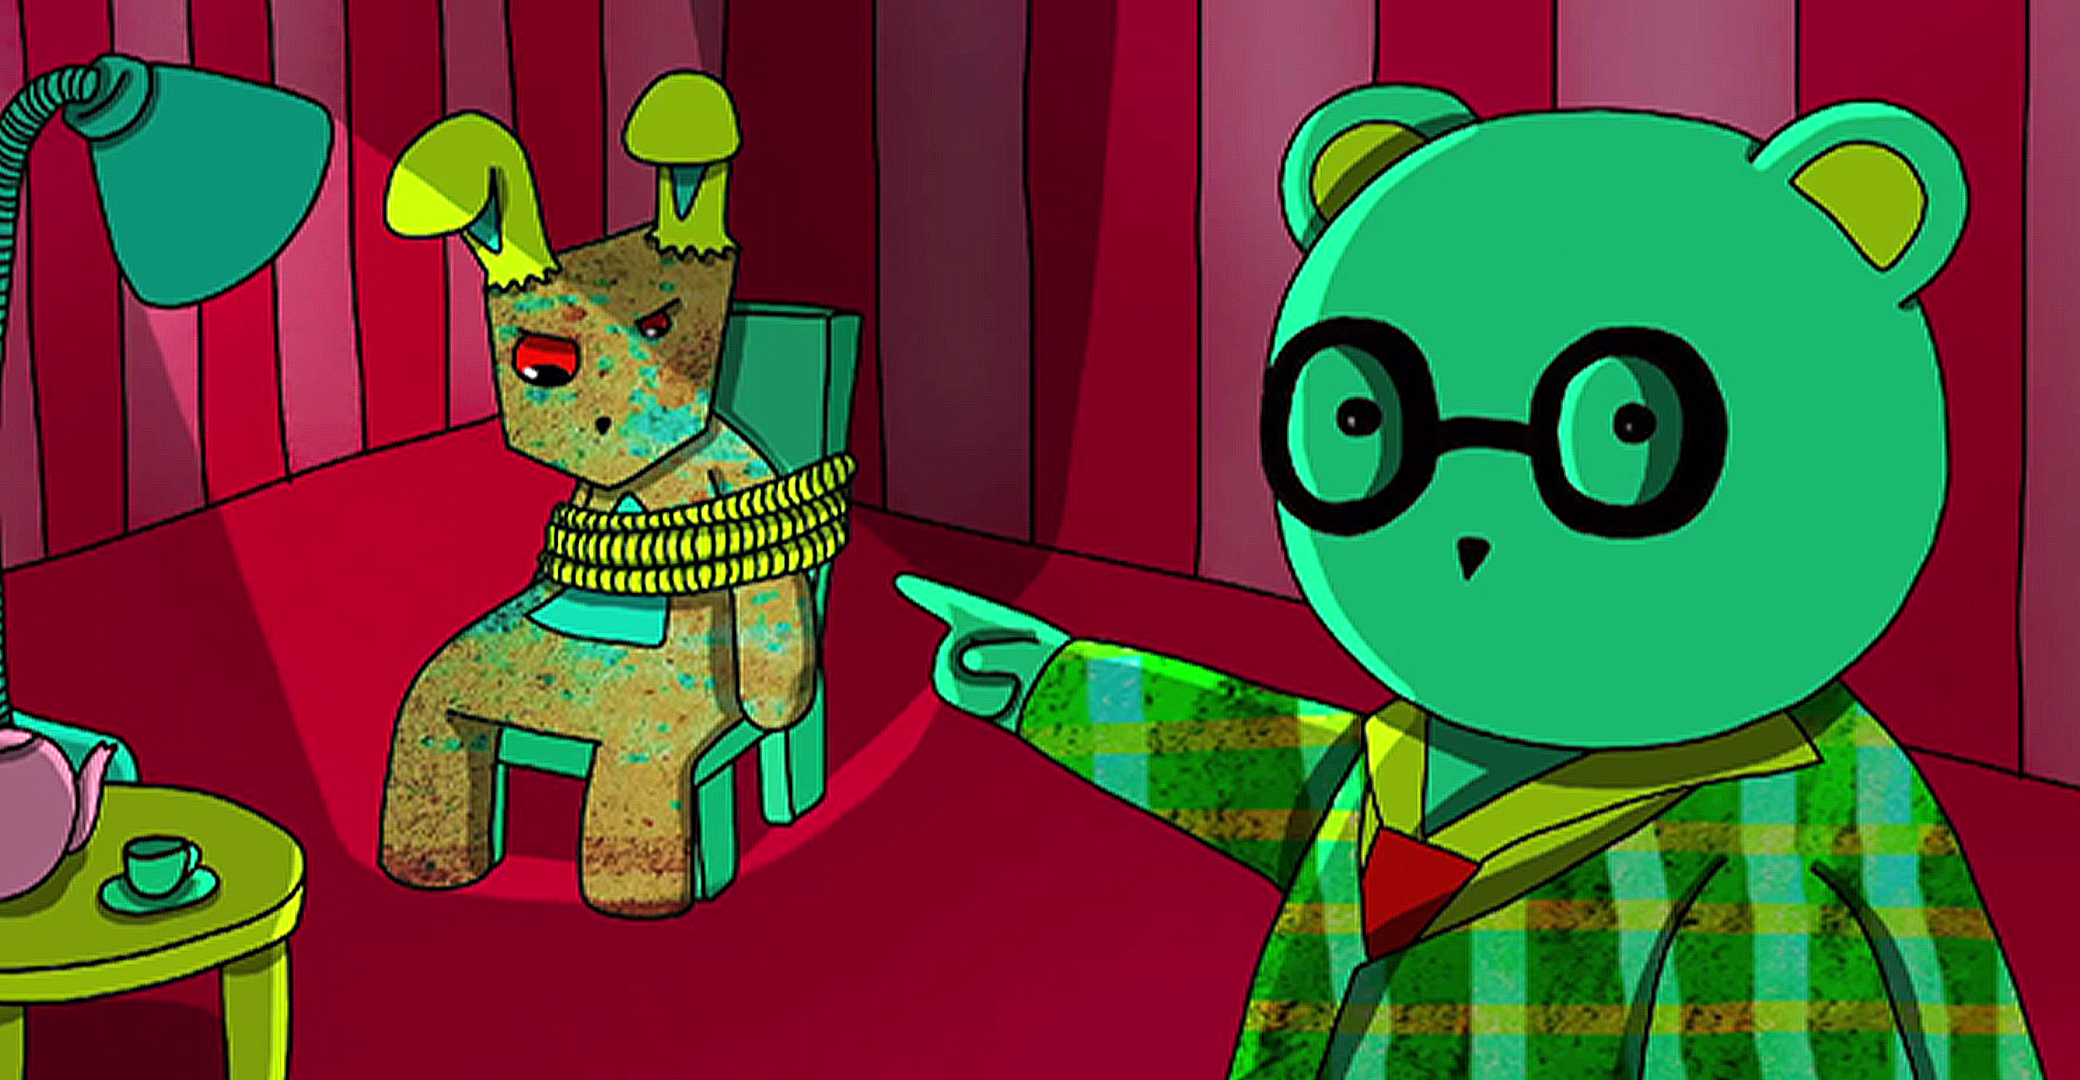 A film still from an animationfeaturing a green teddy bear